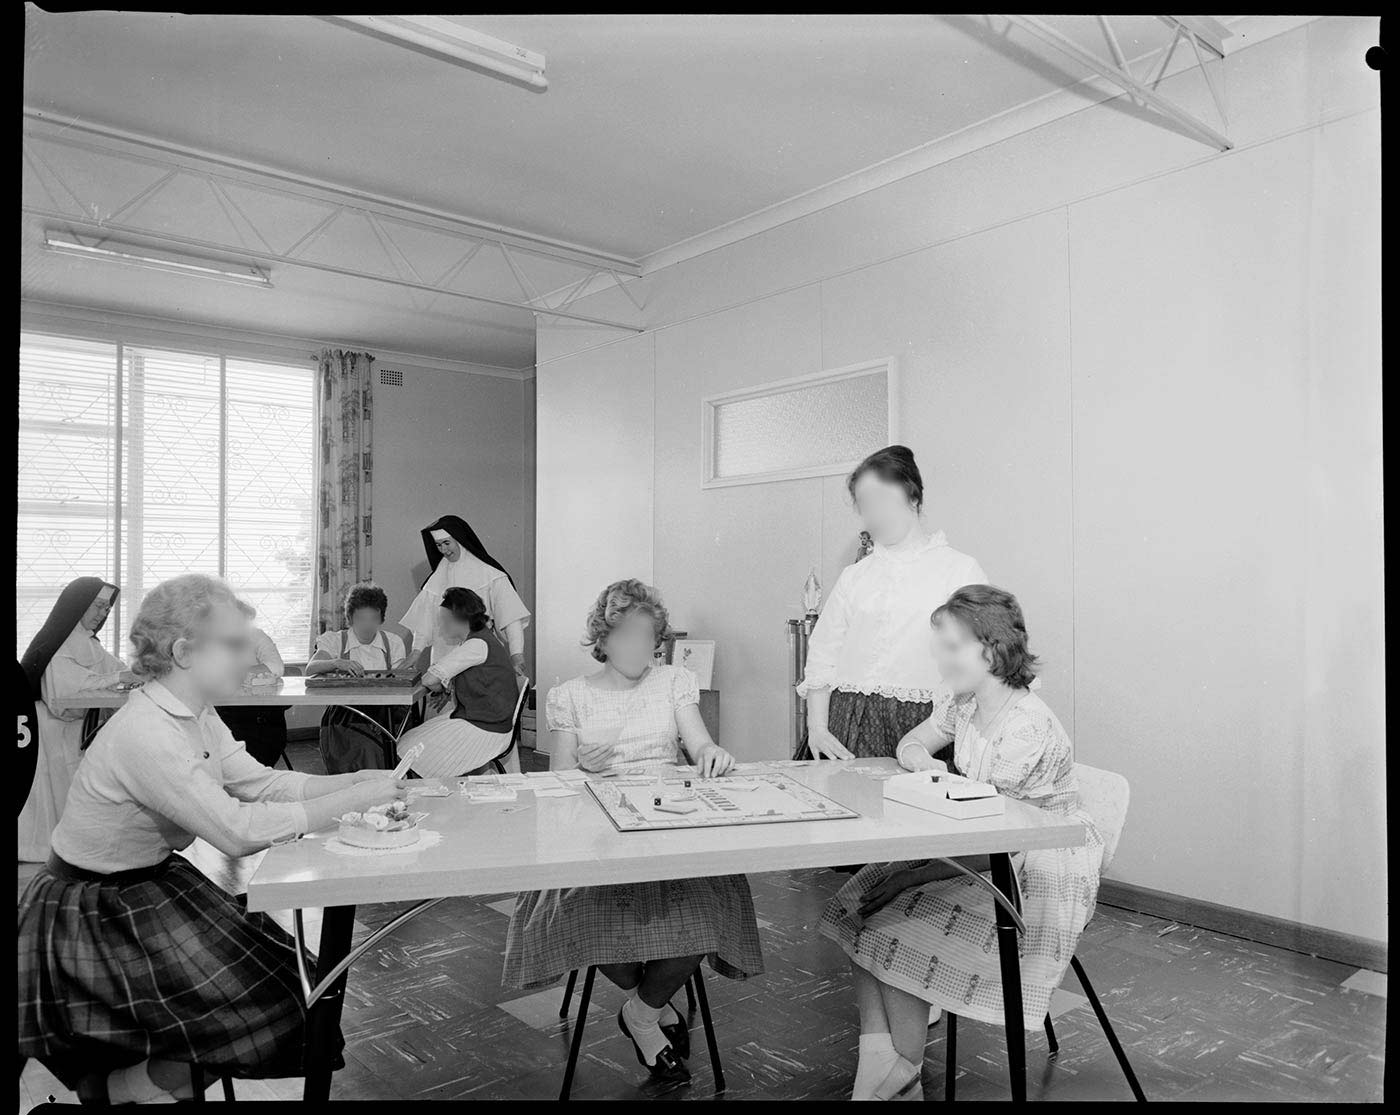 Black and white photo showing two groups of teenage girls sitting at tables, with a central gameboard. The girls' faces have been blurred. Two nuns are visible at the far table. - click to view larger image